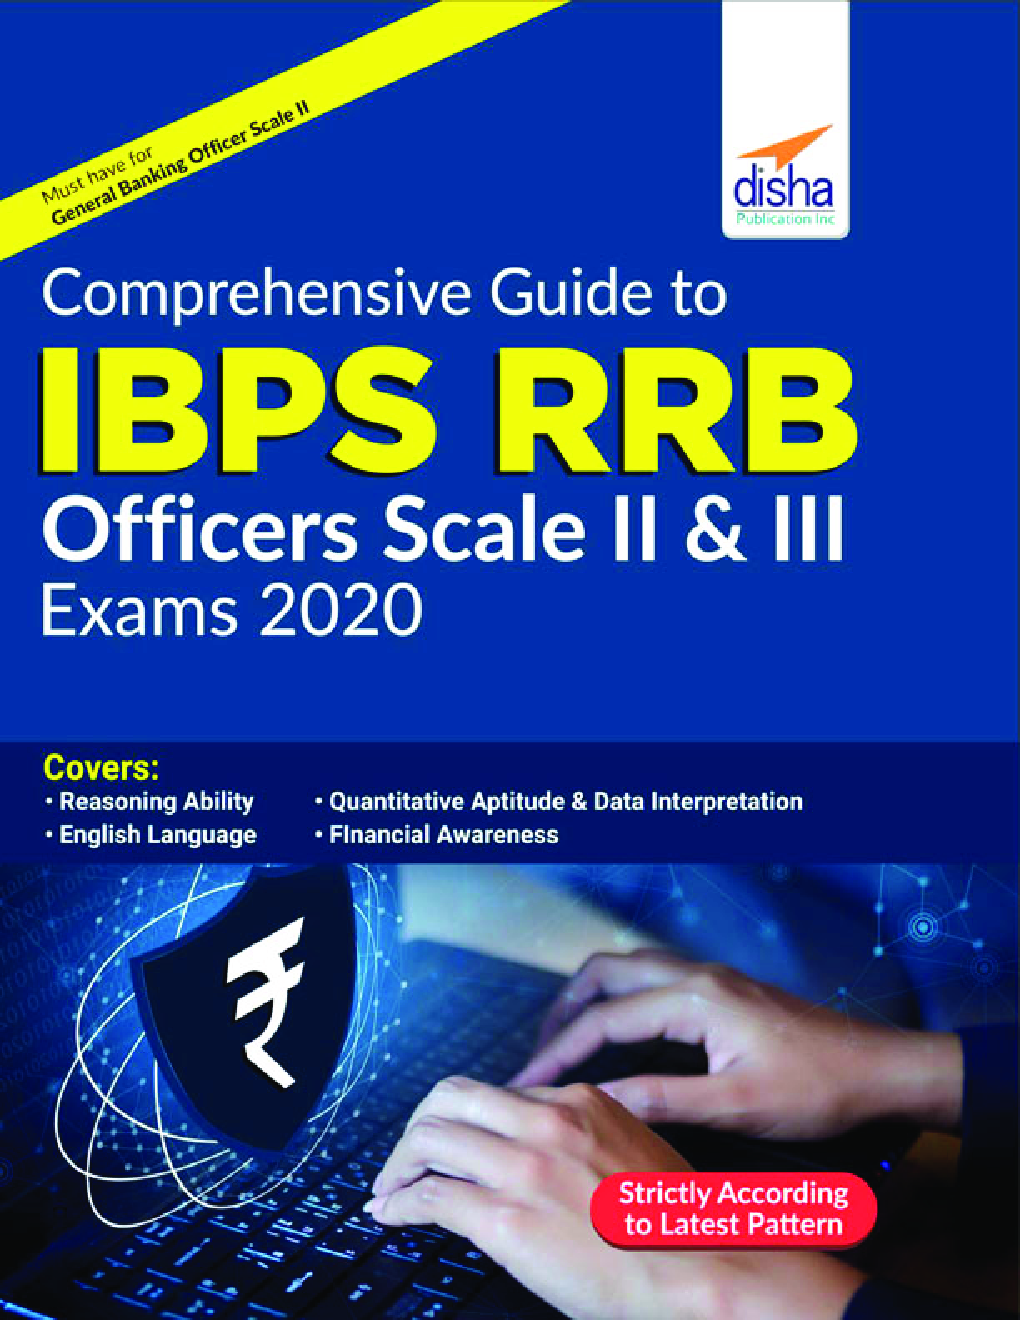 Comprehensive Guide To IBPS RRB Officers Scale II & III Exams 2020 - Page 1